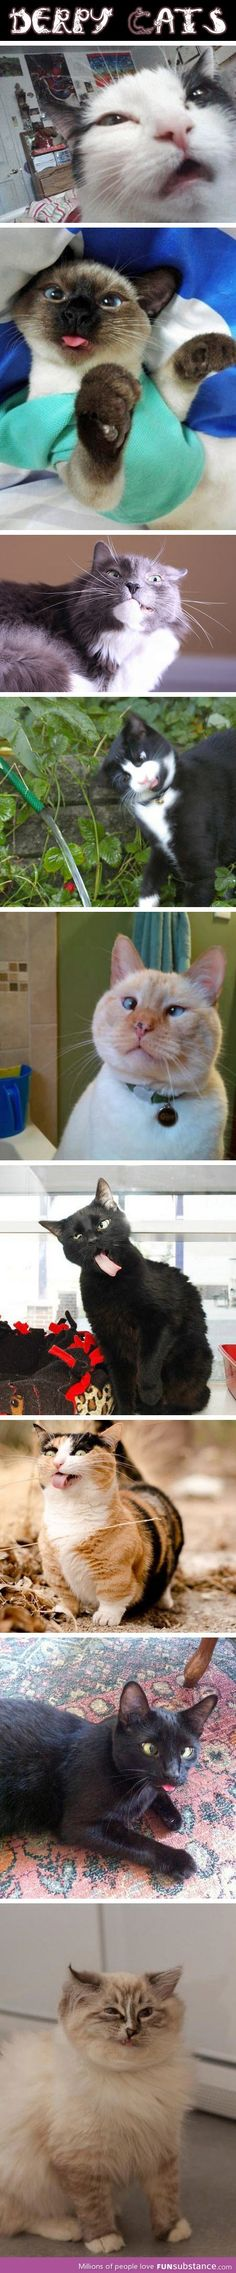 Derpy cats...can't stop laughing!! @Denice Rivas  makes me think of my Frankie!!